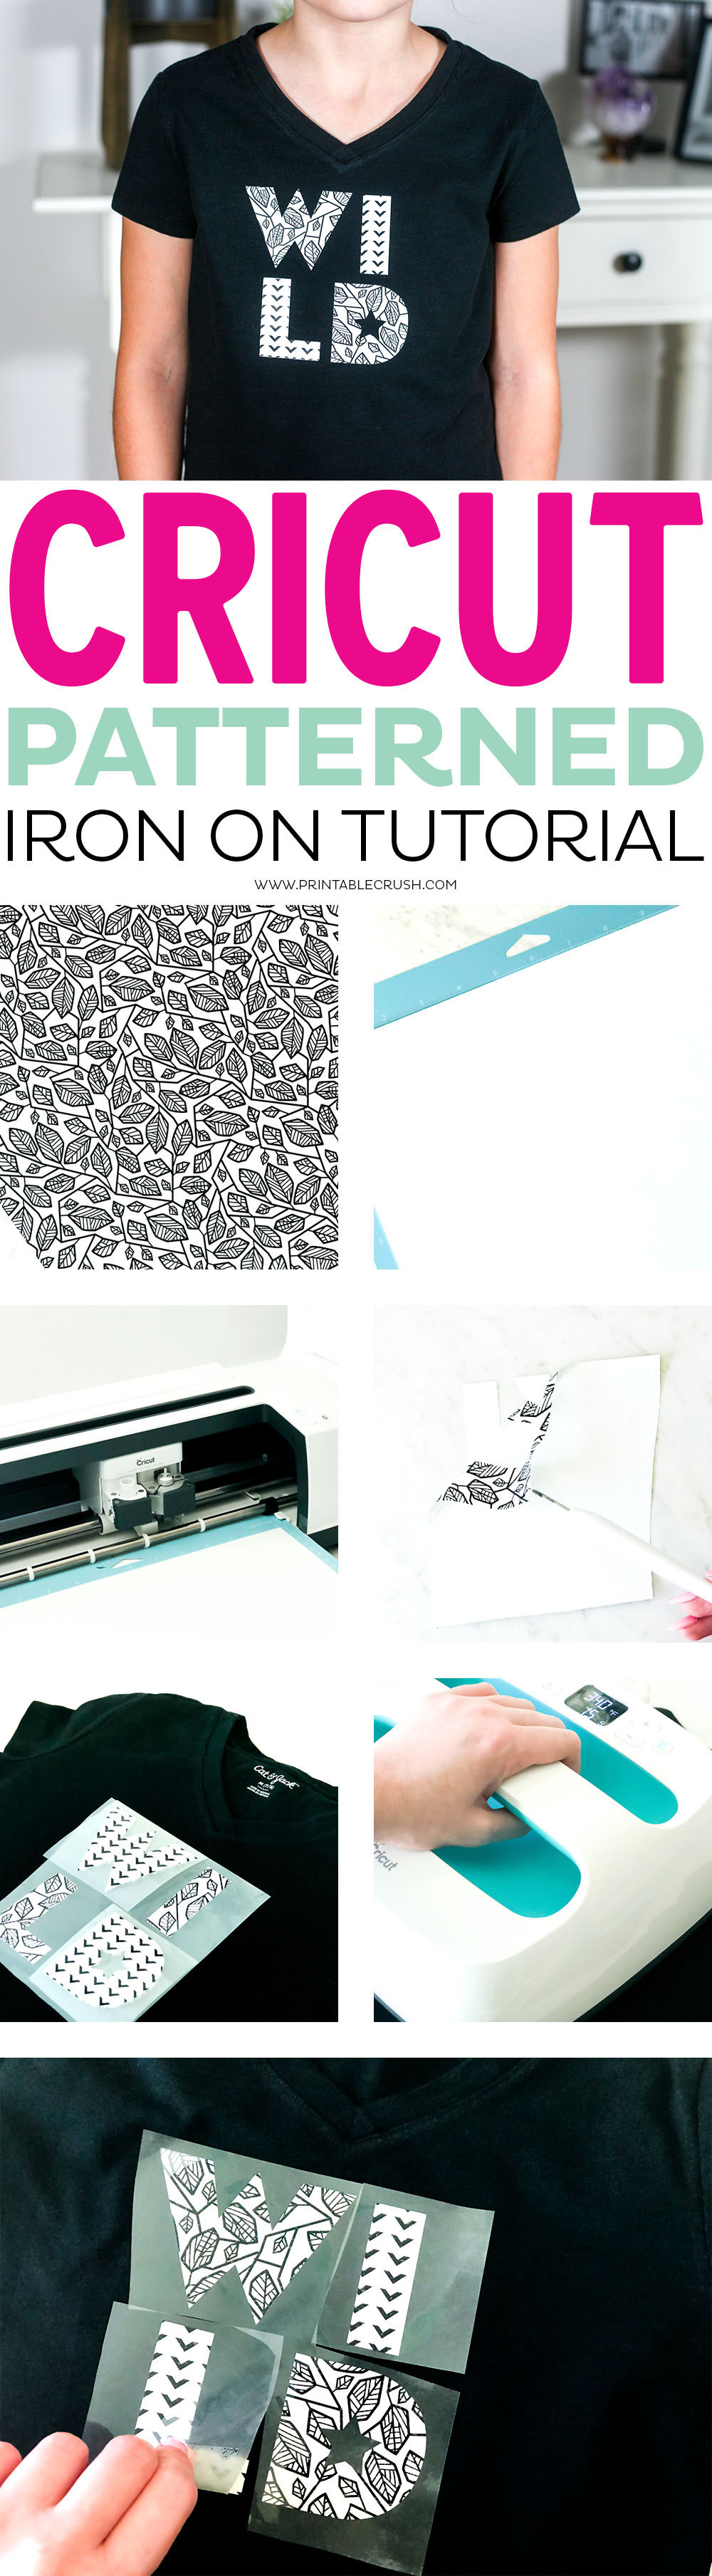 Cricut Patterned Iron On Tutorial Printable Crush